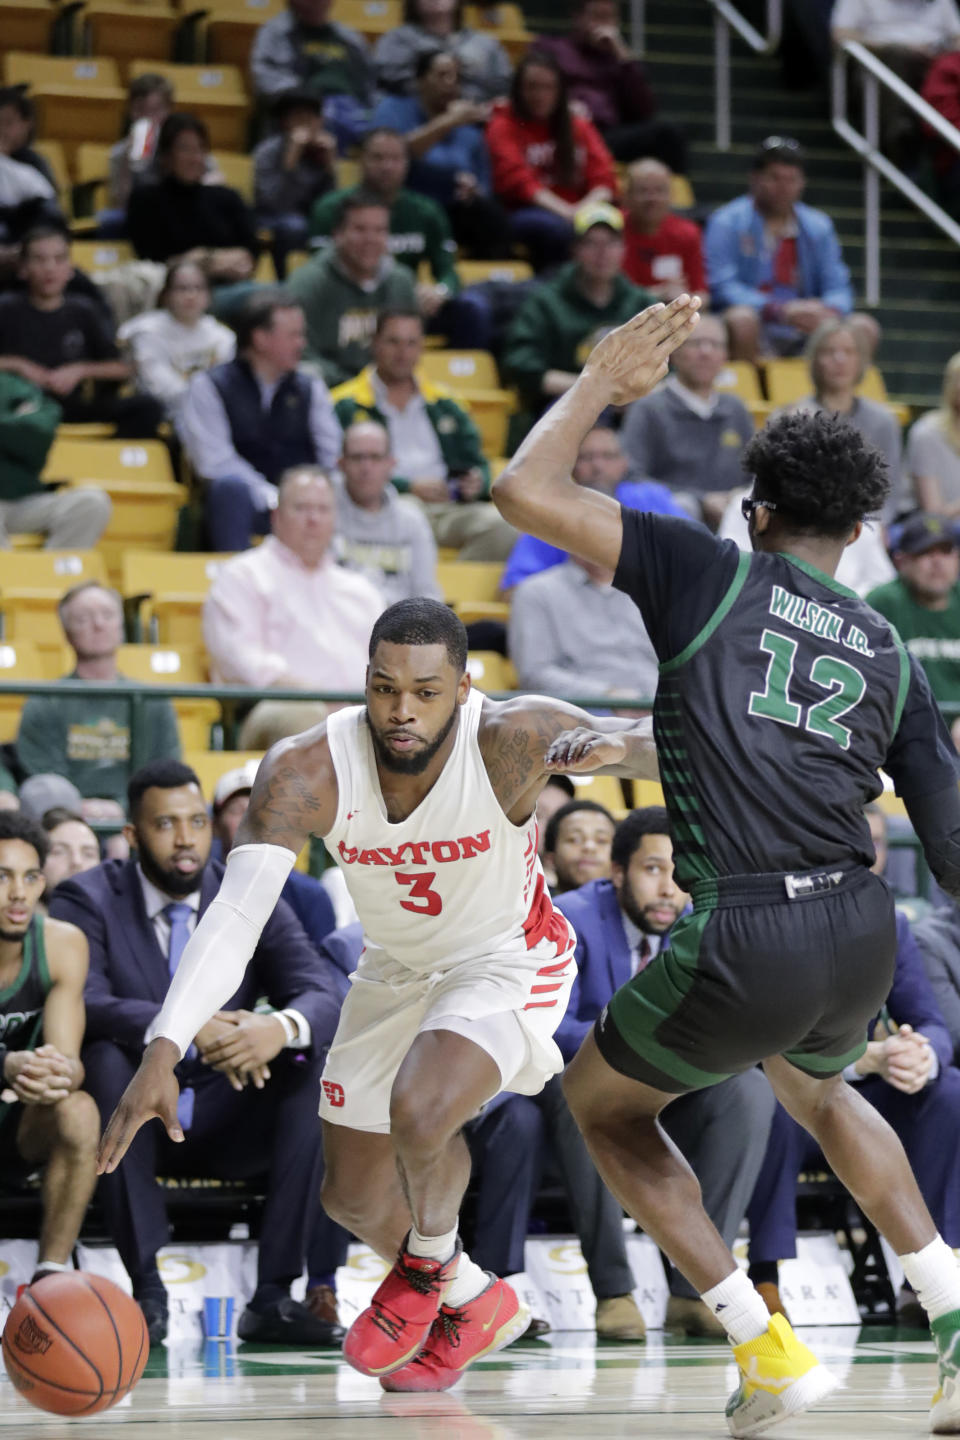 Dayton's Trey Landers (3) moves the ball on George Mason's AJ Wilson (12) during the first half of an NCAA college basketball game, Tuesday, Feb. 25, 2020, in Fairfax, Va. (AP Photo/Luis M. Alvarez)